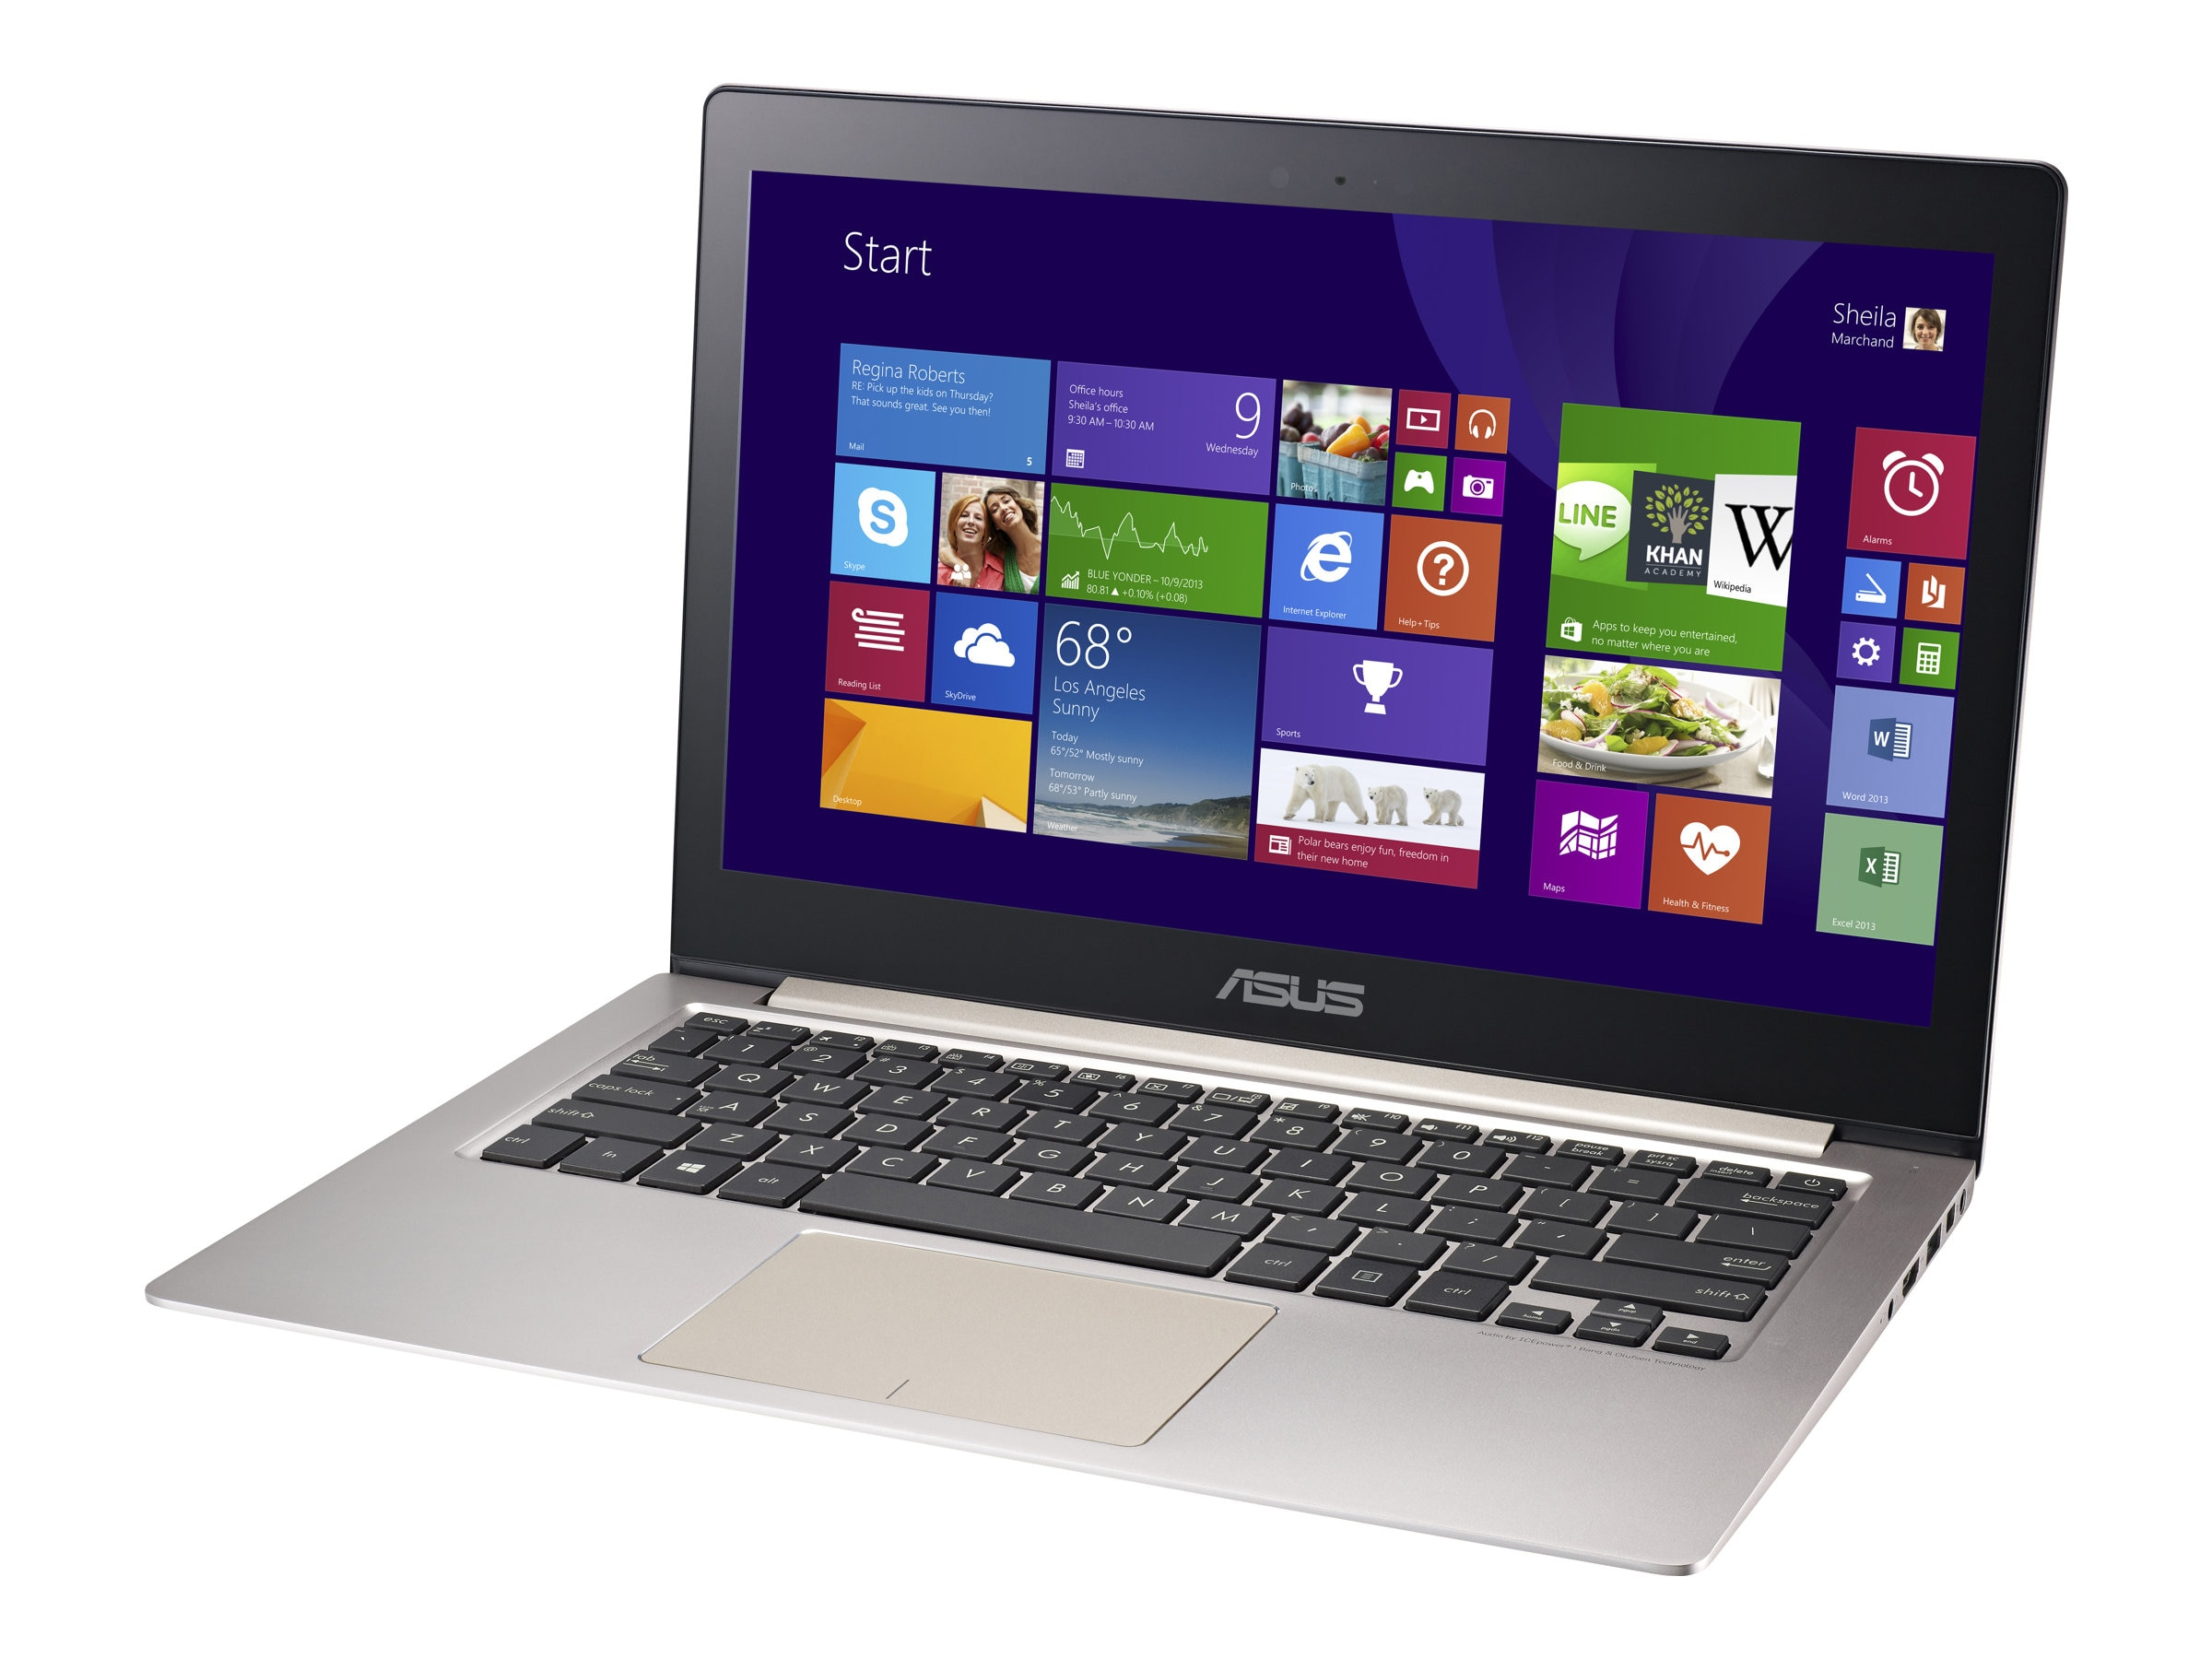 Asus UX303UB Core i7 2.5GHz 12GB 512GB 13.3 Touch W10-64